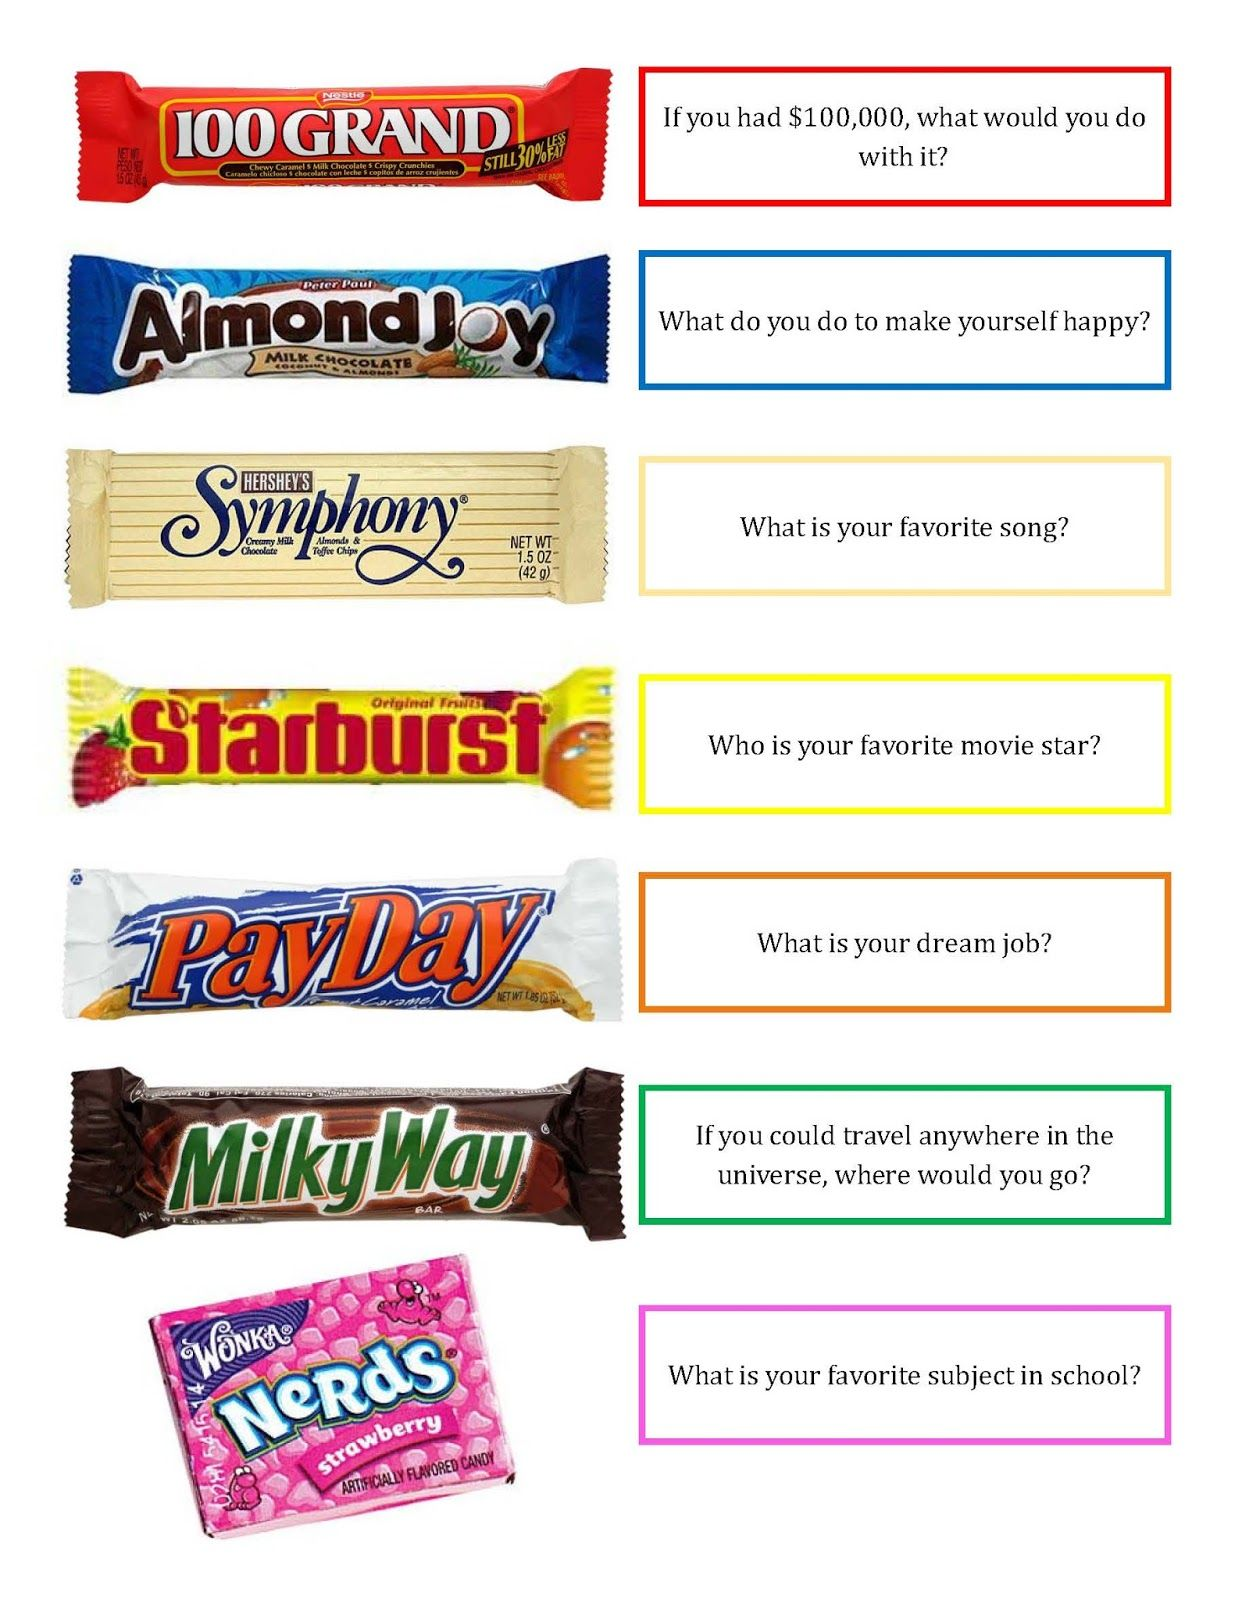 candy bar pick up lines